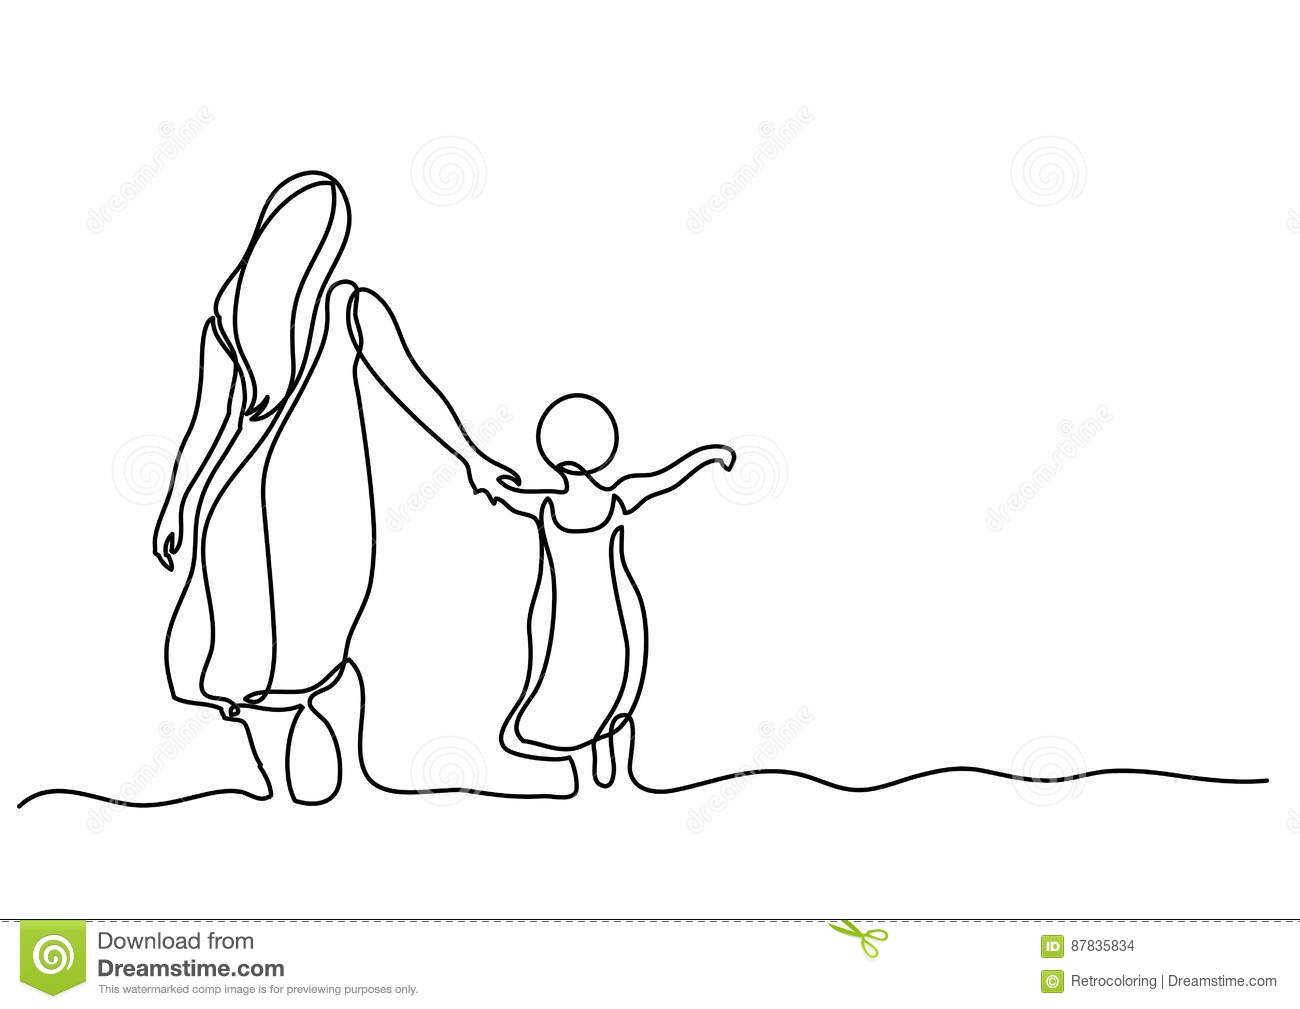 Dessin Au Trait Continu De Mere Et D Enfant En Mer Illustration De Vecteur